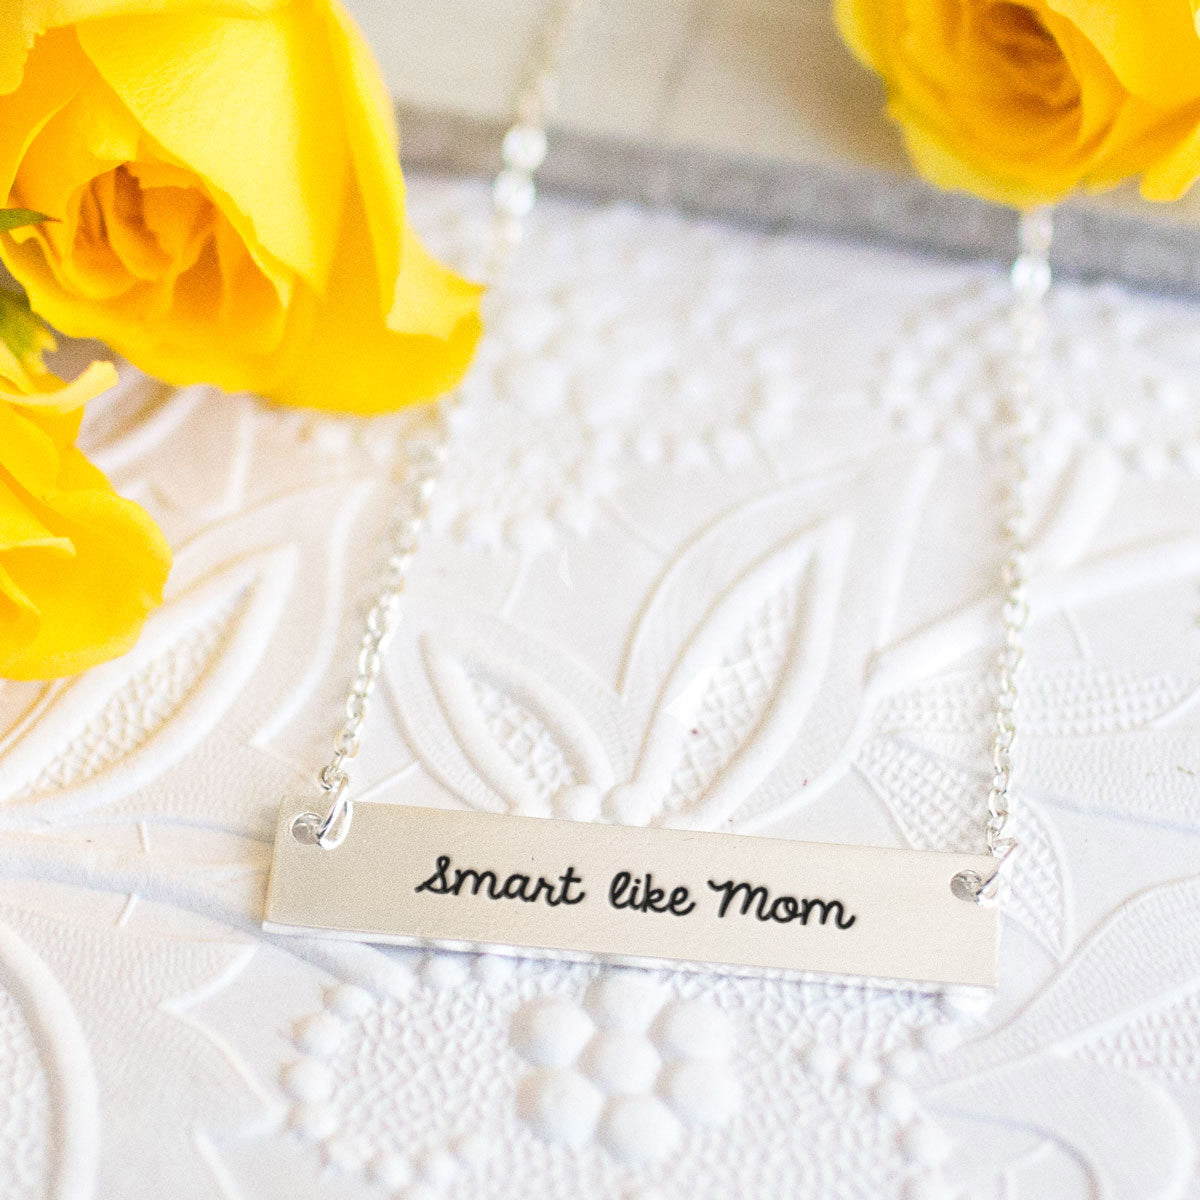 Smart Like Mom Gold / Silver Bar Necklace